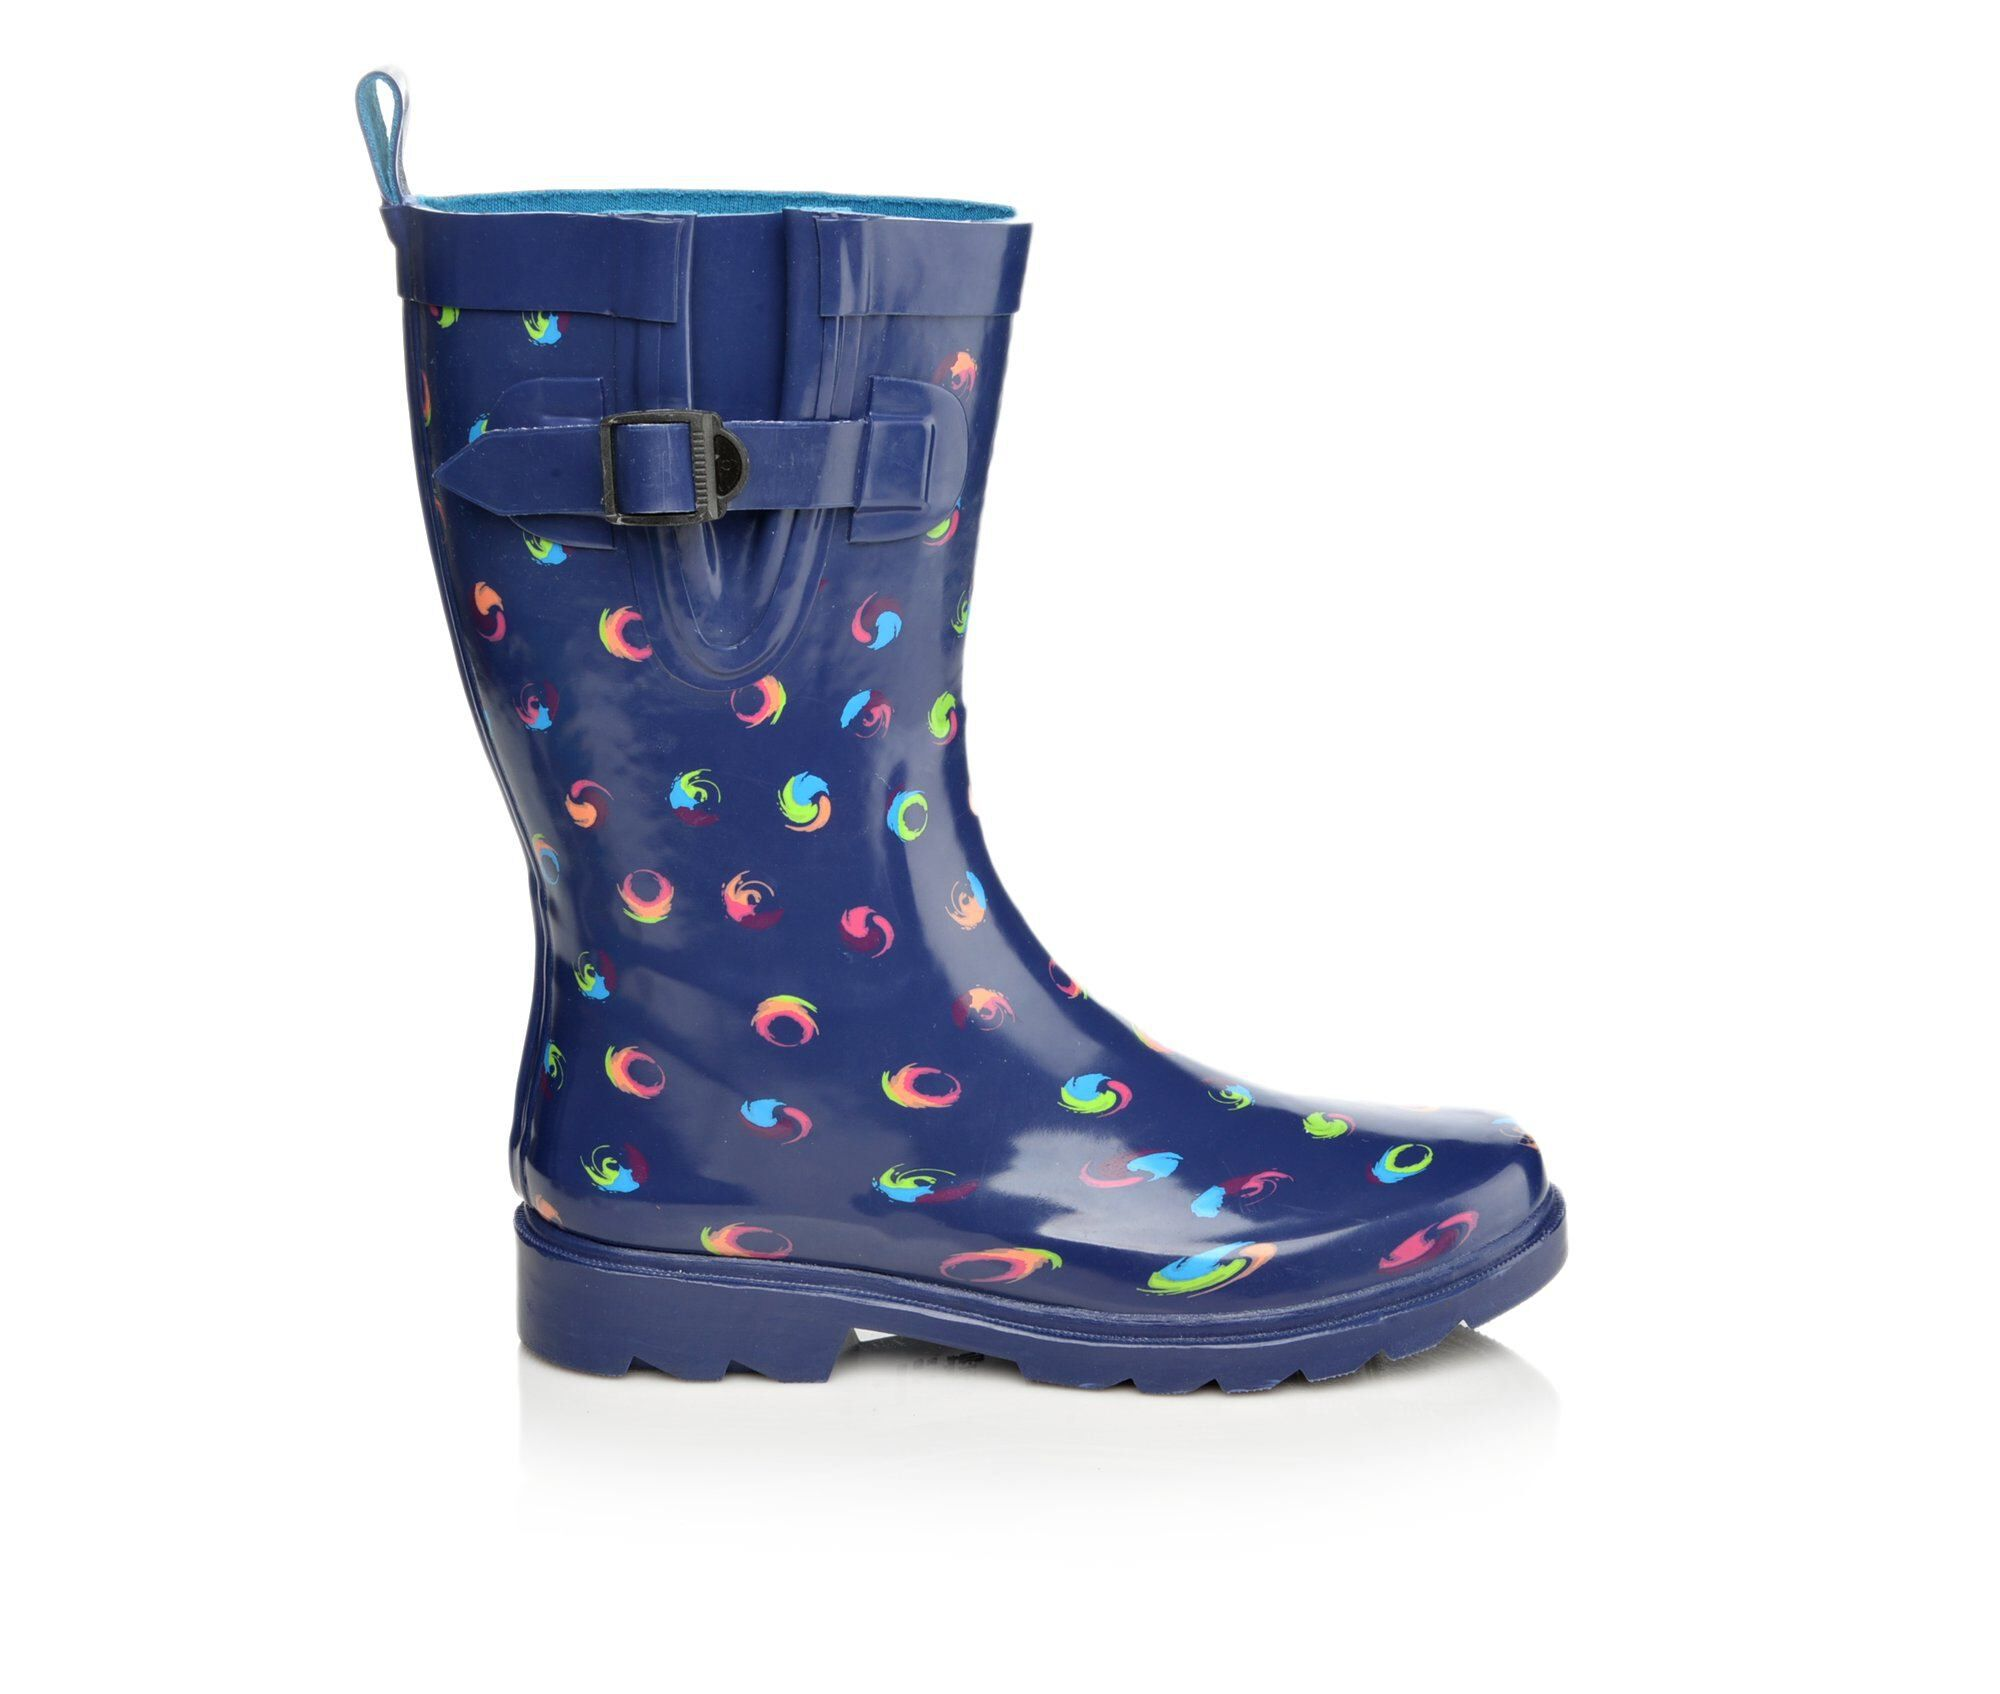 Women's Capelli New York Houndstooth Mid Rain Boots clearance footaction store with big discount discount fashion Style discount popular SK15Ds